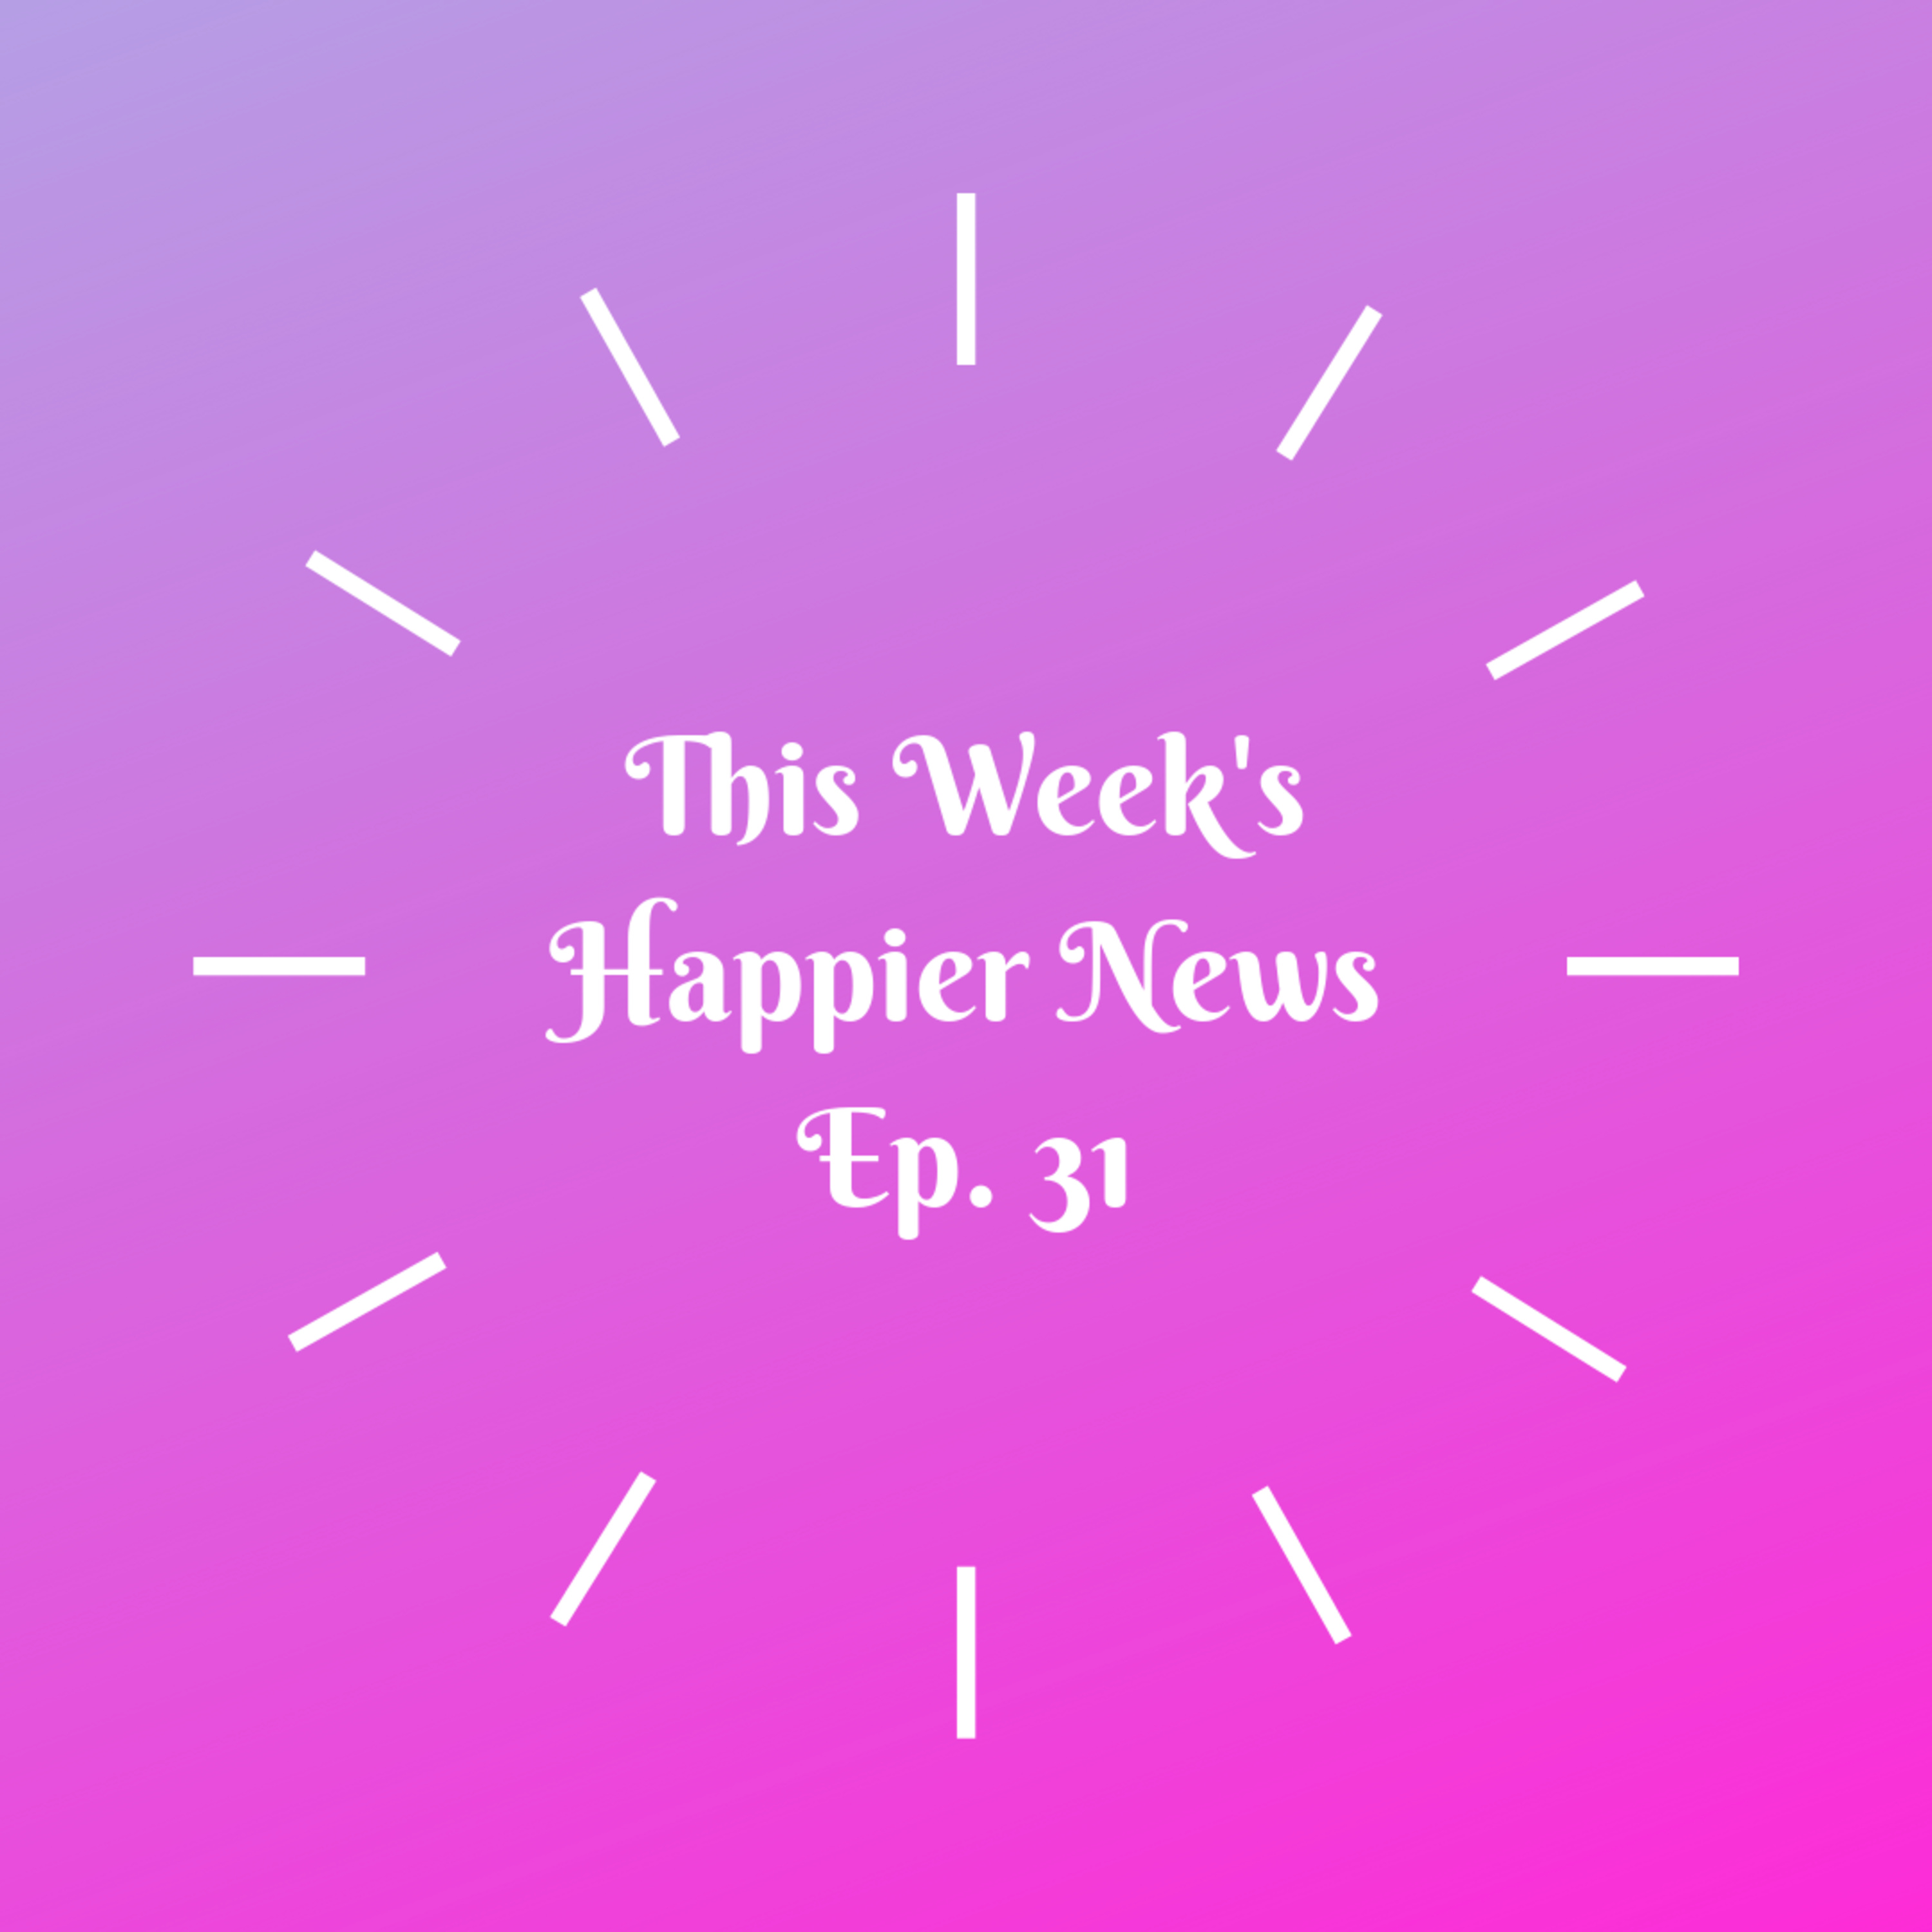 Alex Trebeck, Ending Child Marriage, Paying It Forward - This Week's Happier News in 10 Minutes, Episode 31